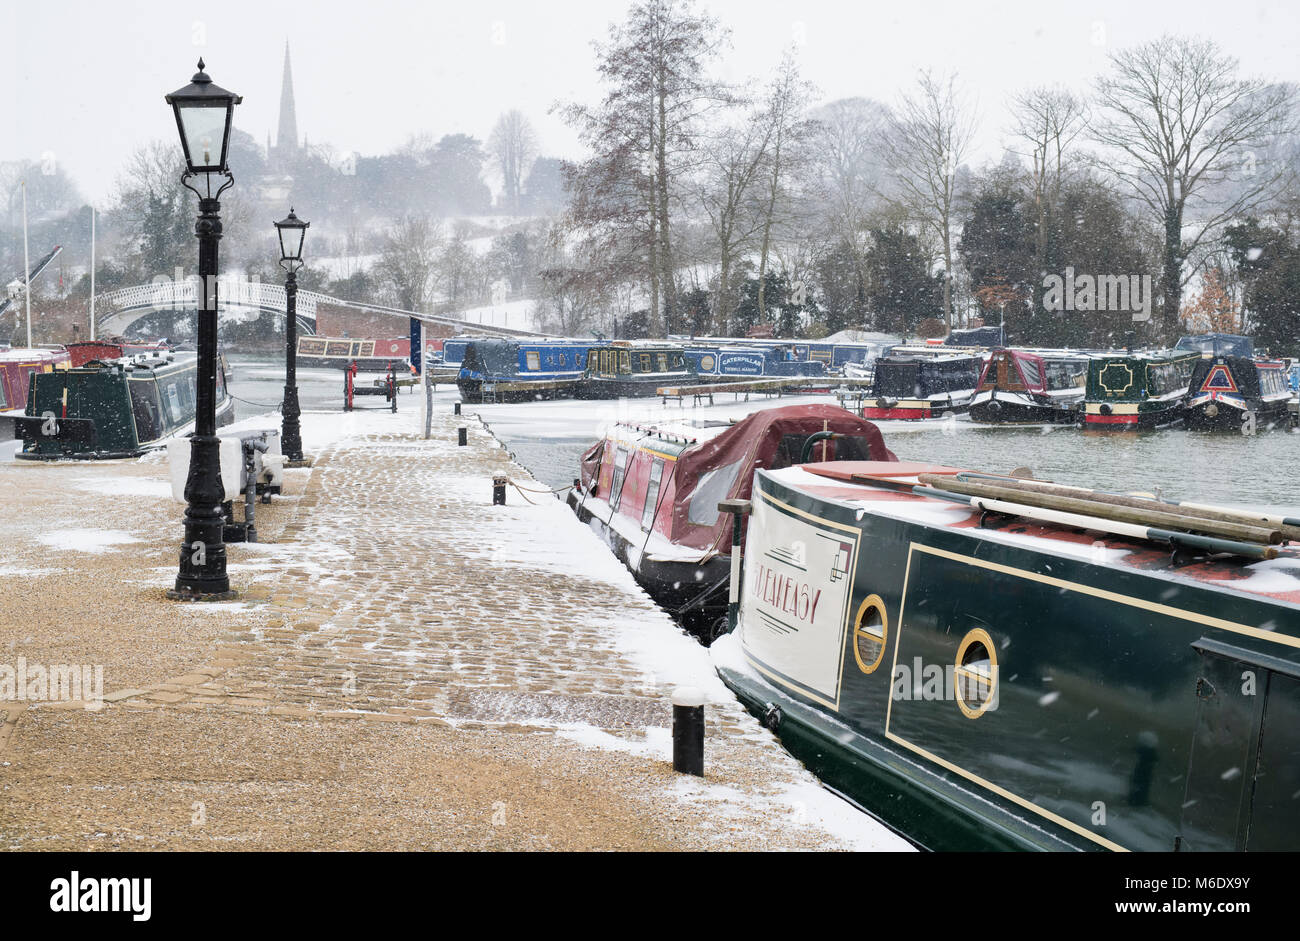 Canal boats in the snow in braunston marina in winter. The Wharf, Braunston, Northamptonshire, UK - Stock Image